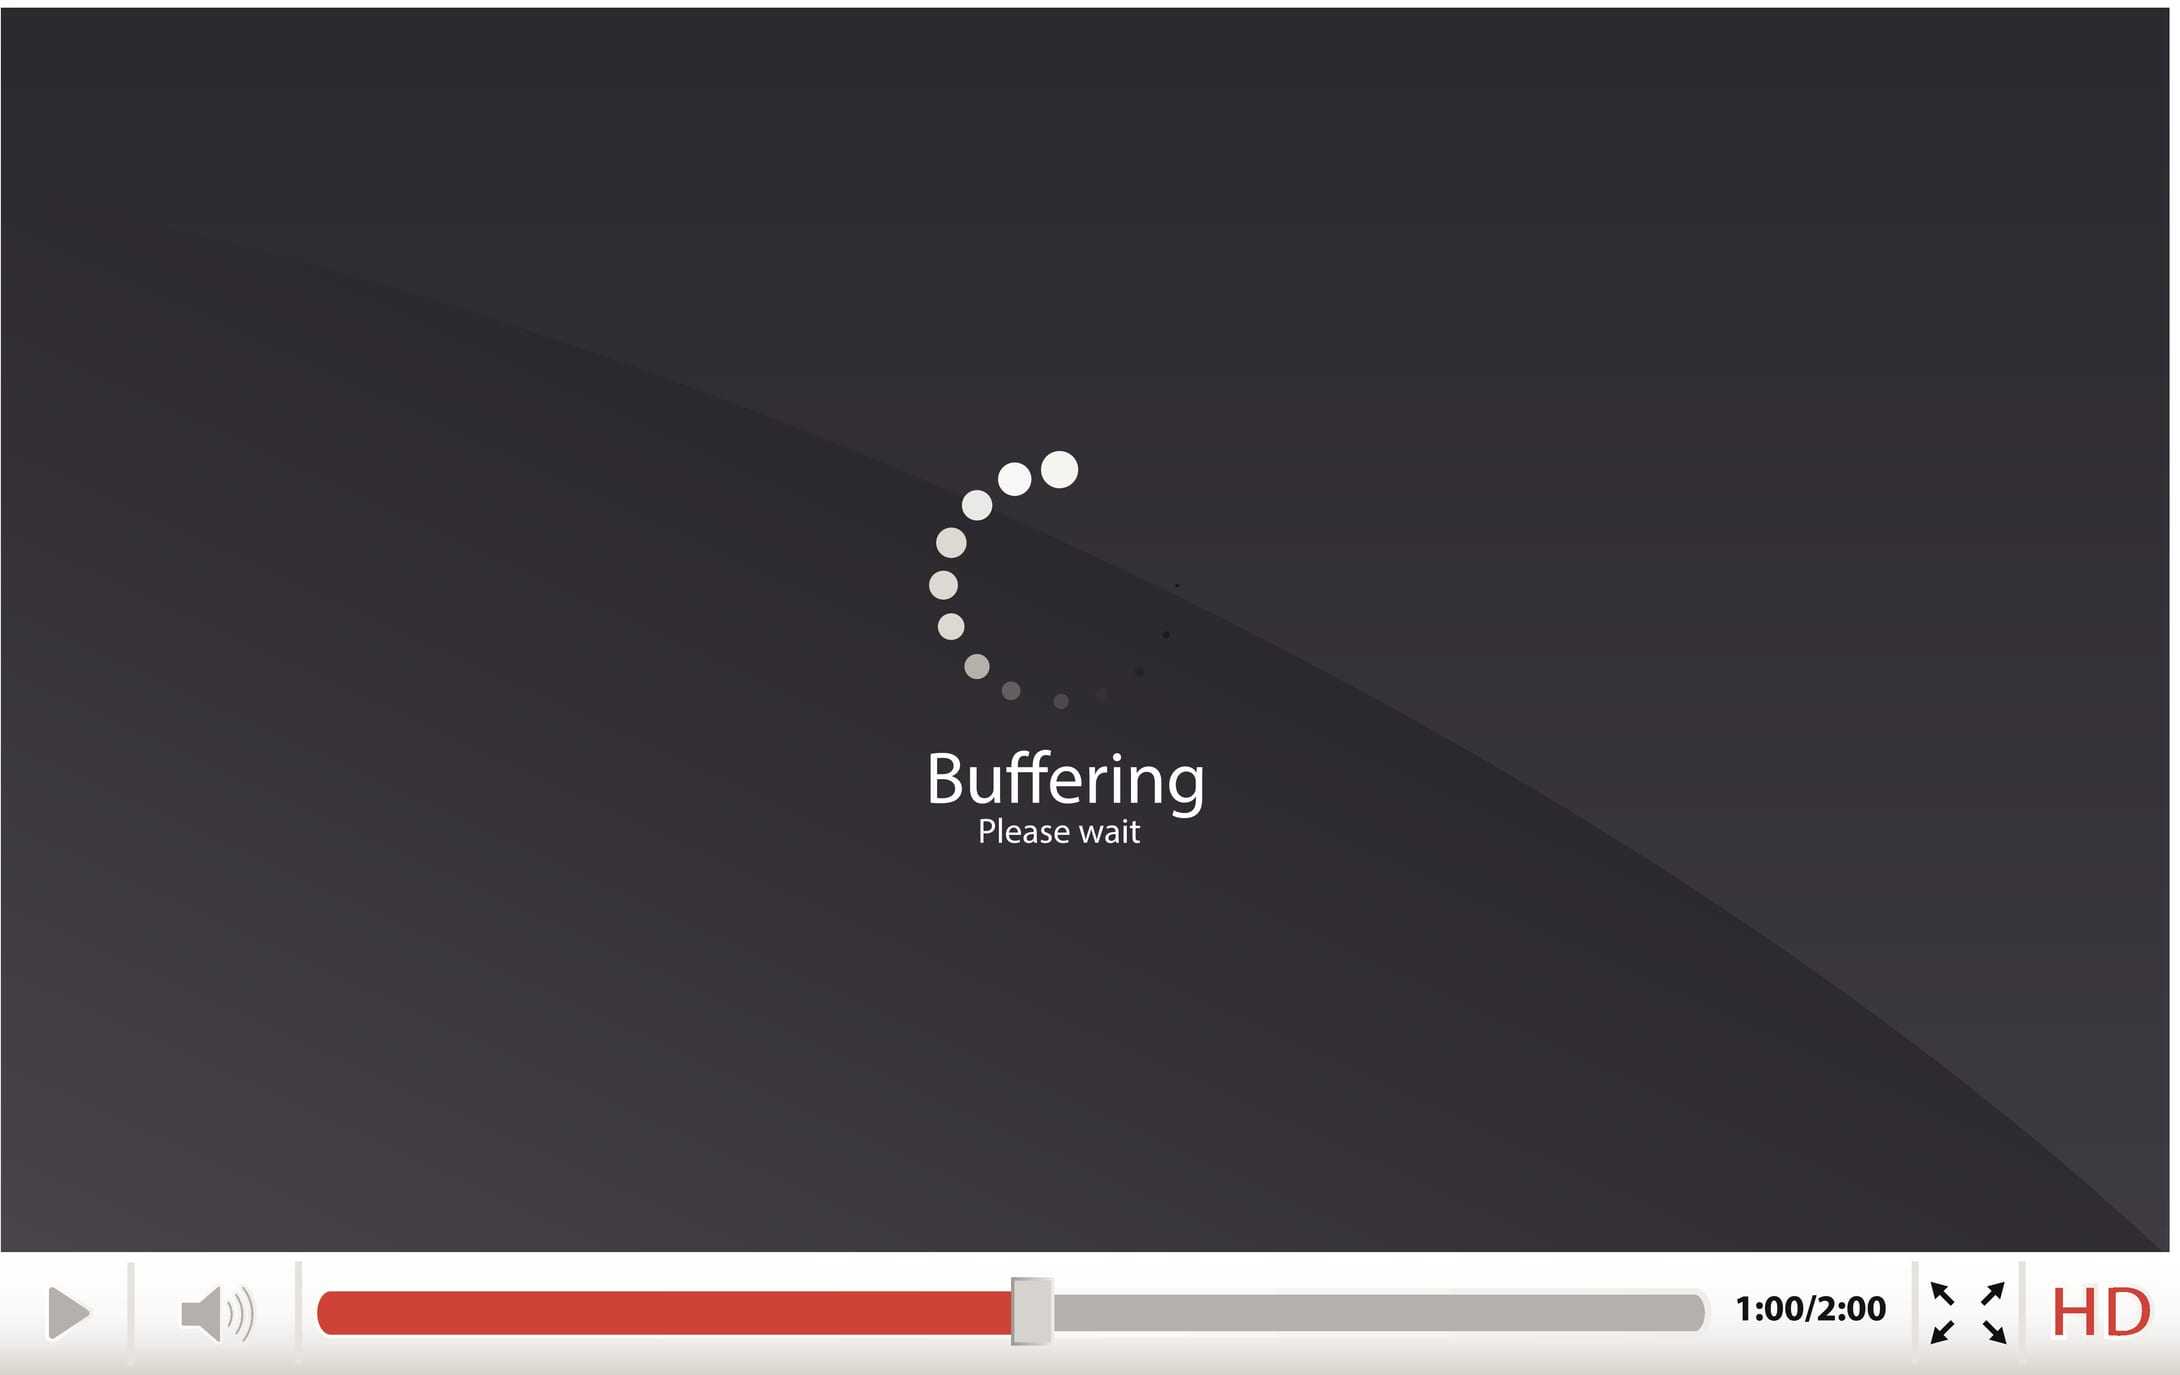 Which CDN Network Does Your OVP Use - buffering